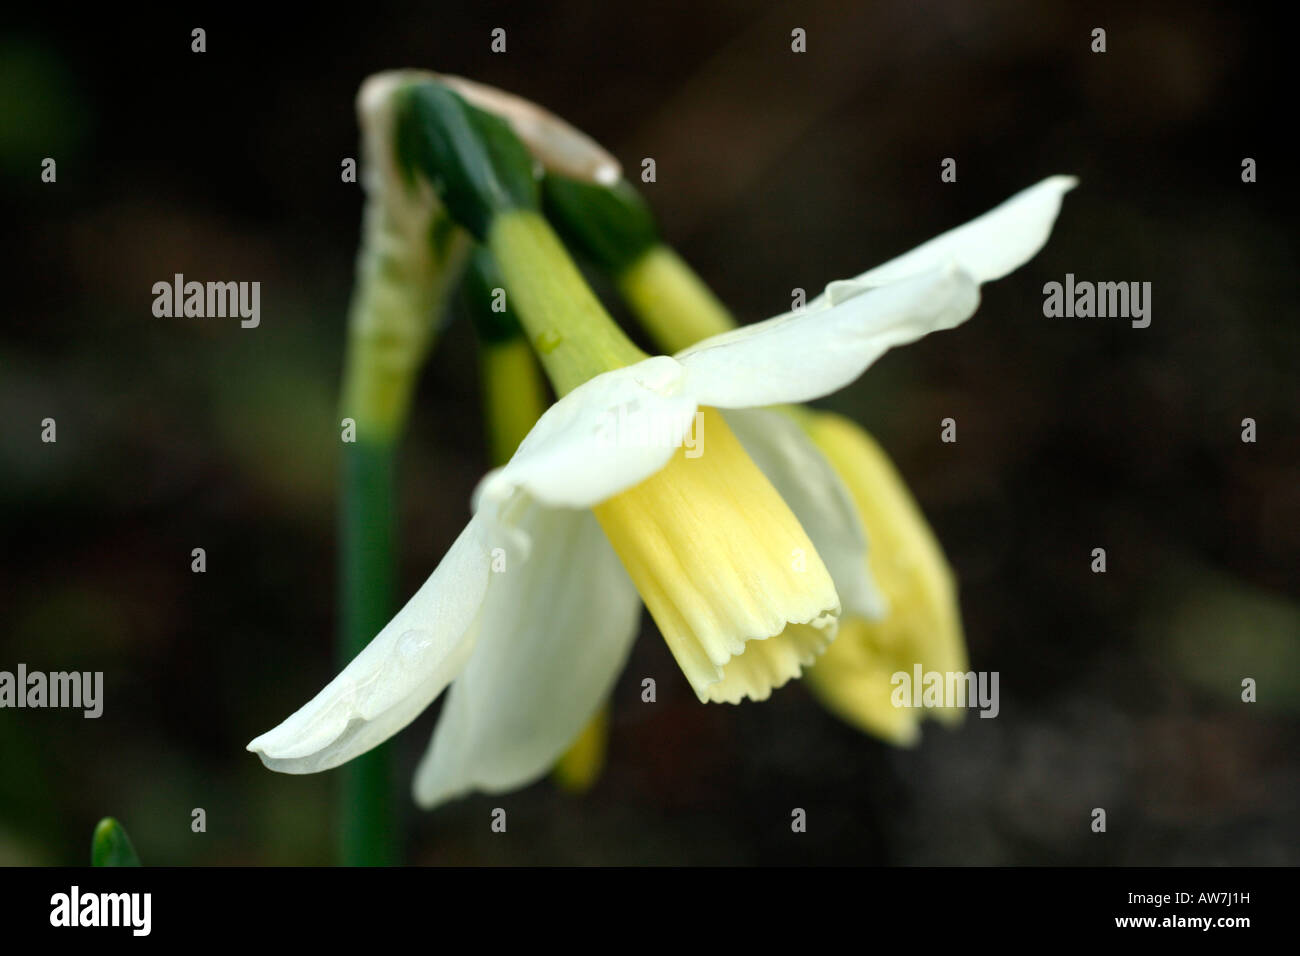 NARCISSUS TOTO AGM Stock Photo